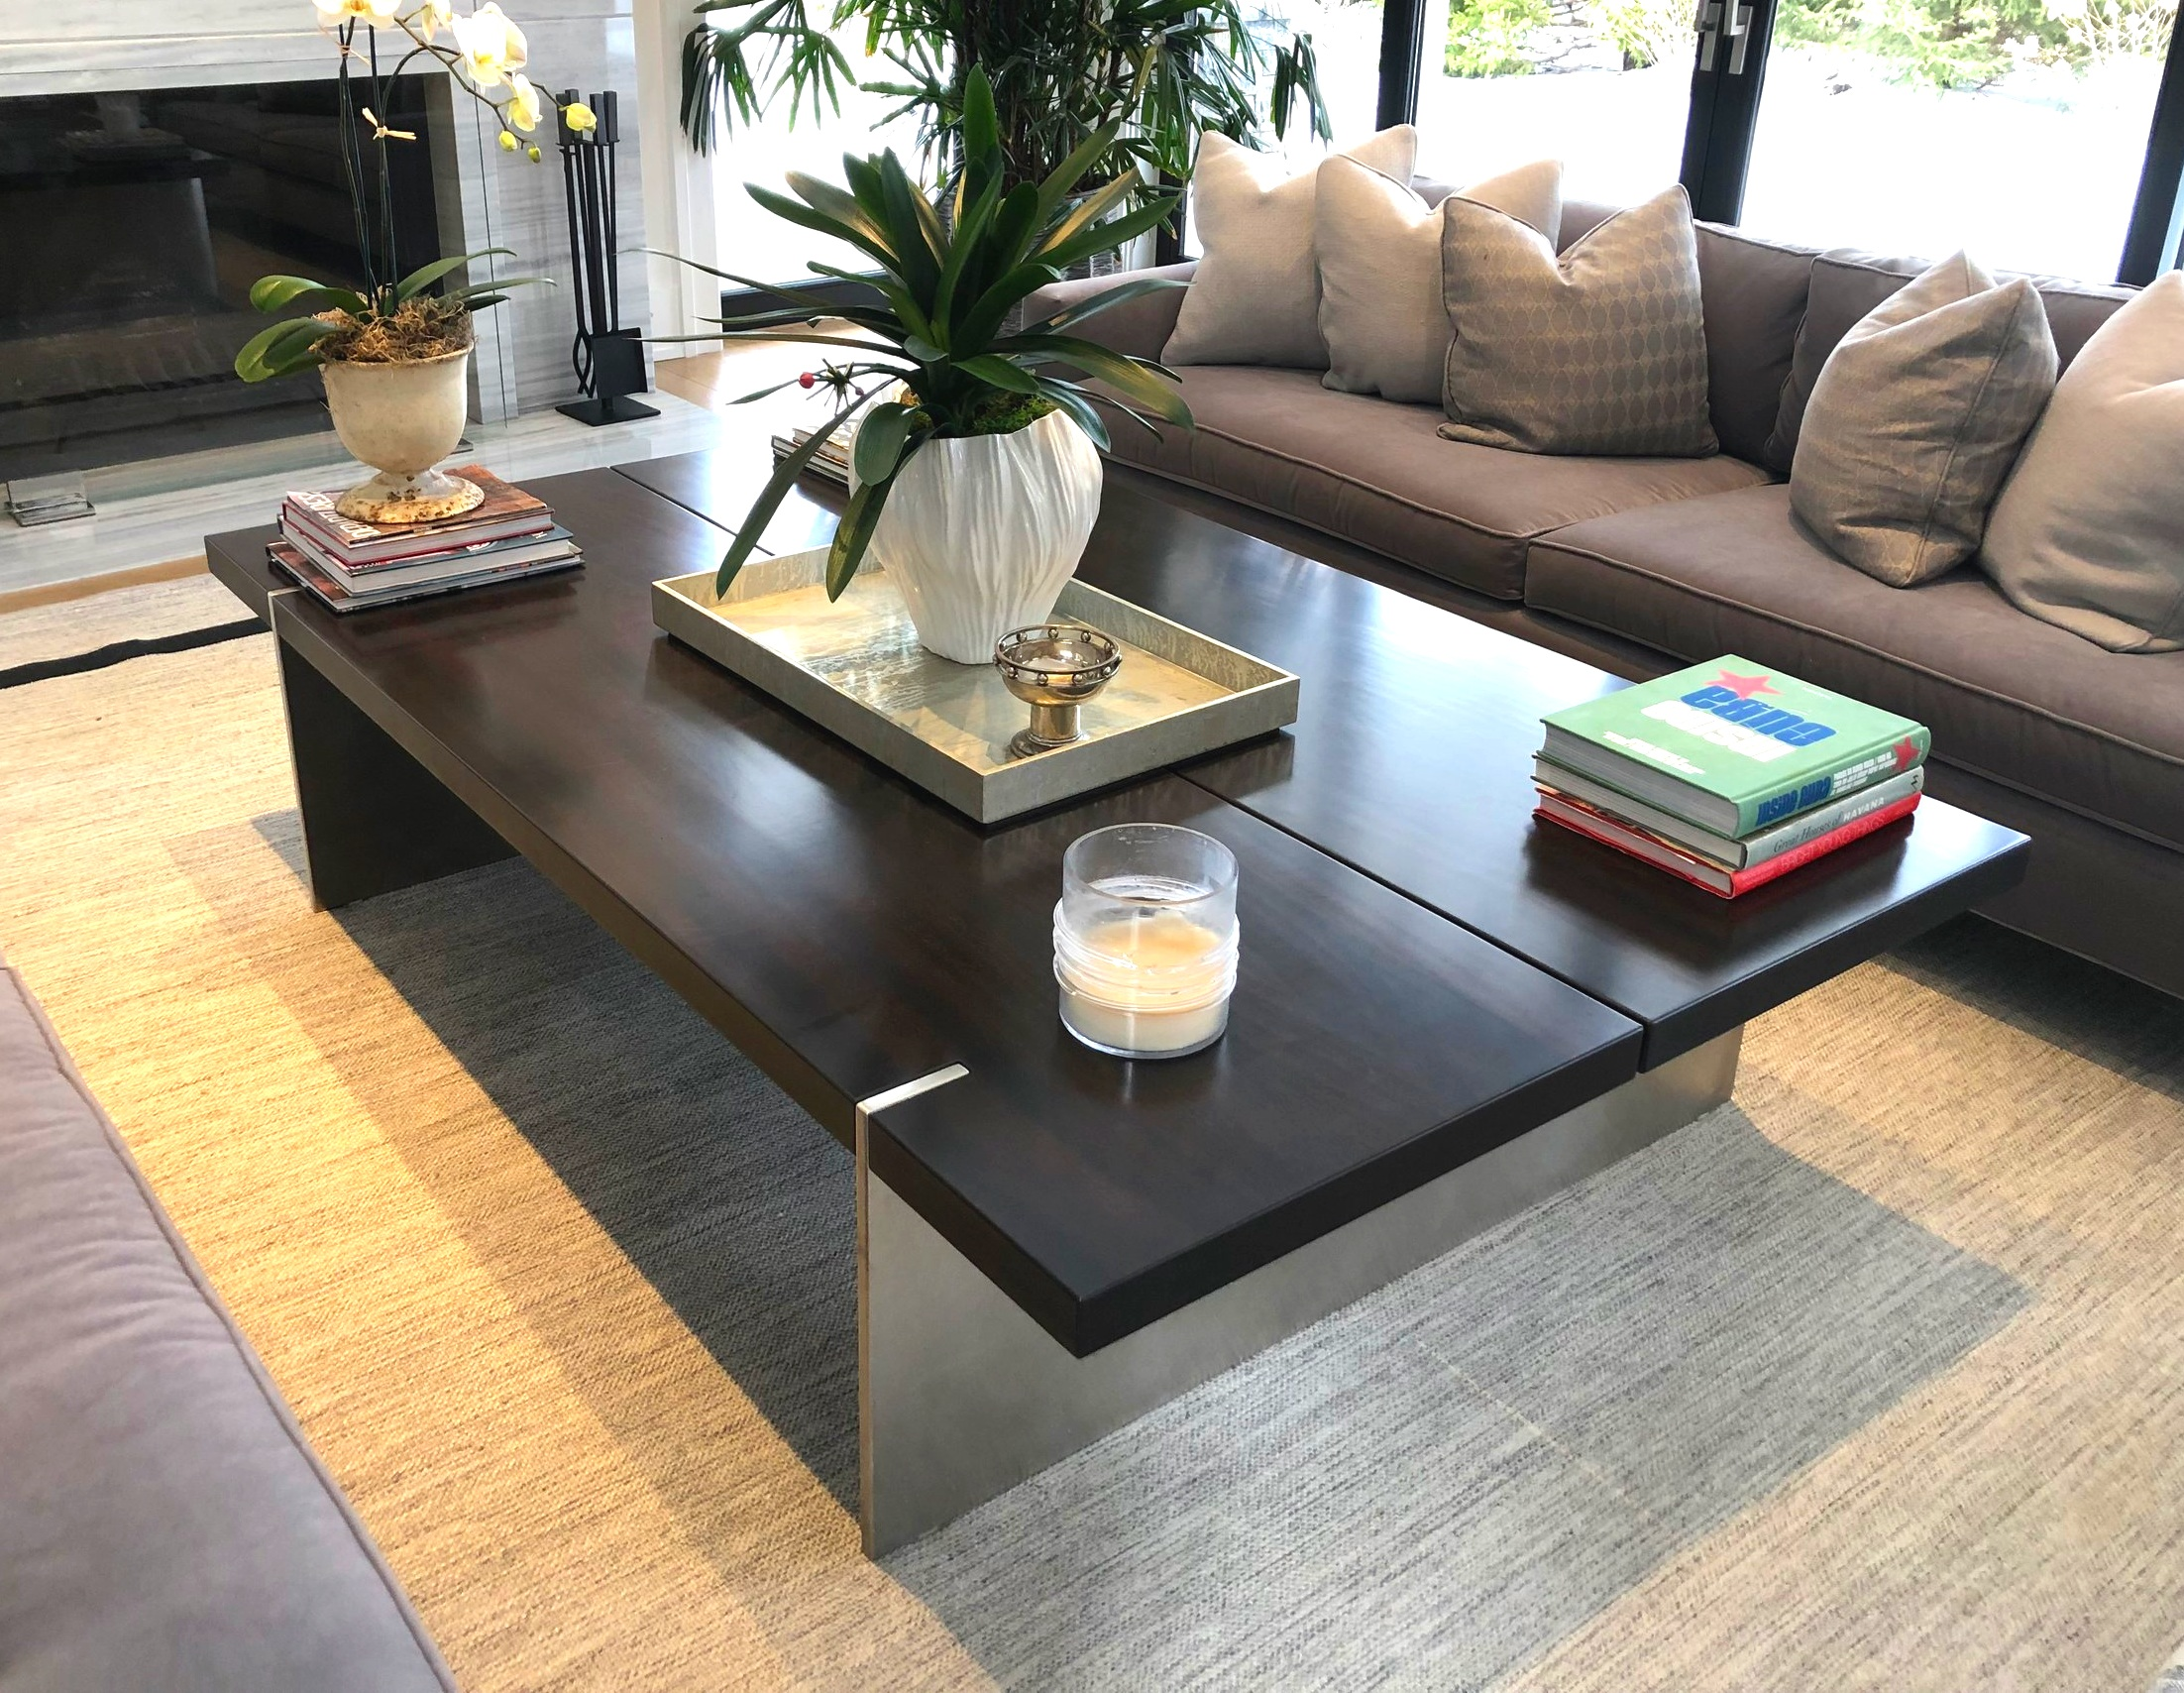 Mahogany split top coffee table with solid stainless steel legs